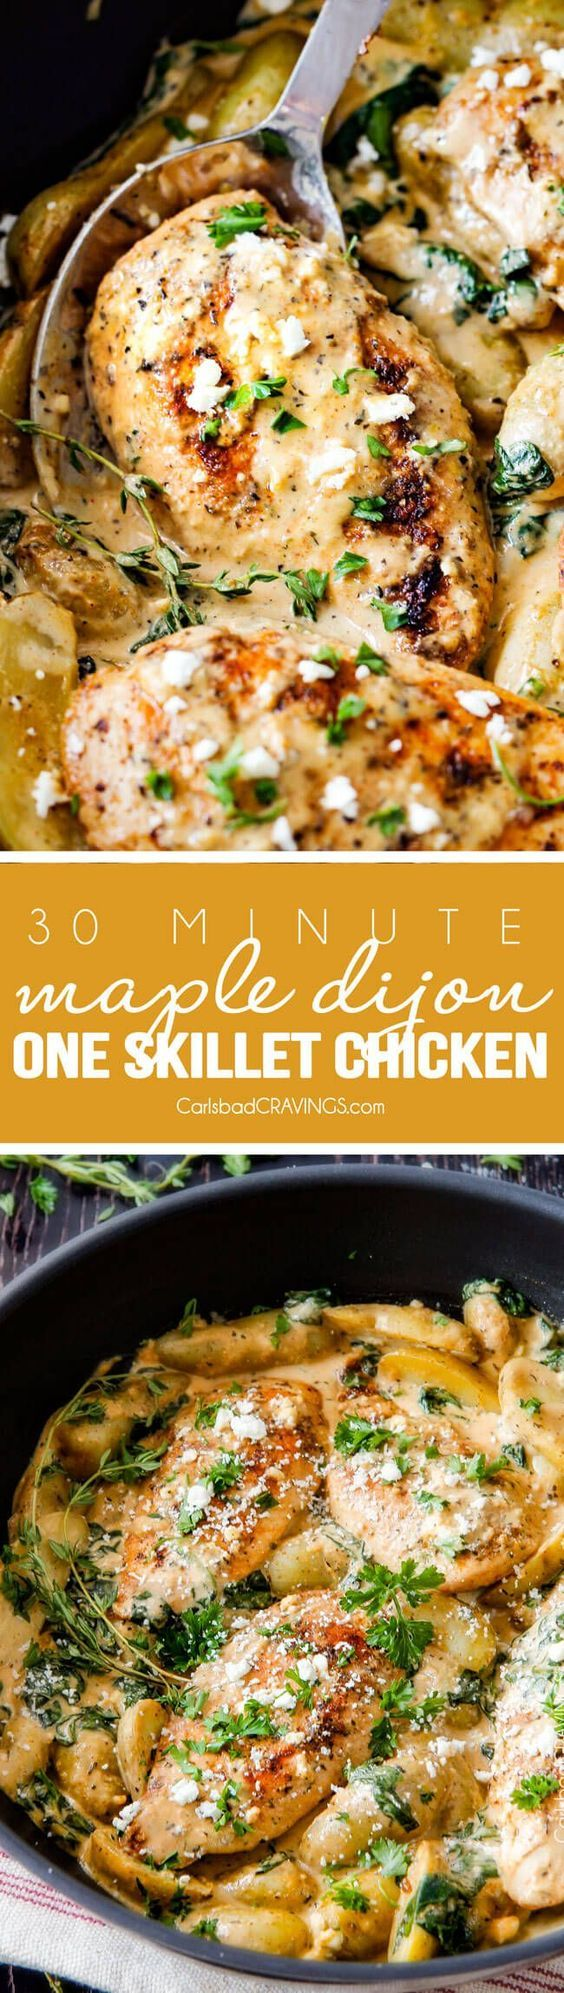 30 Minute Maple Dijon Chicken Skillet with Fingerling Potatoes and Spinach - this super easy, flavorful one chicken skillet is a meal all in one and is my favorite go-to weeknight meal! My kids love that it has potatoes in it and the creamy maple Dijon sauce is incredible! via @Carlsbad Cravings